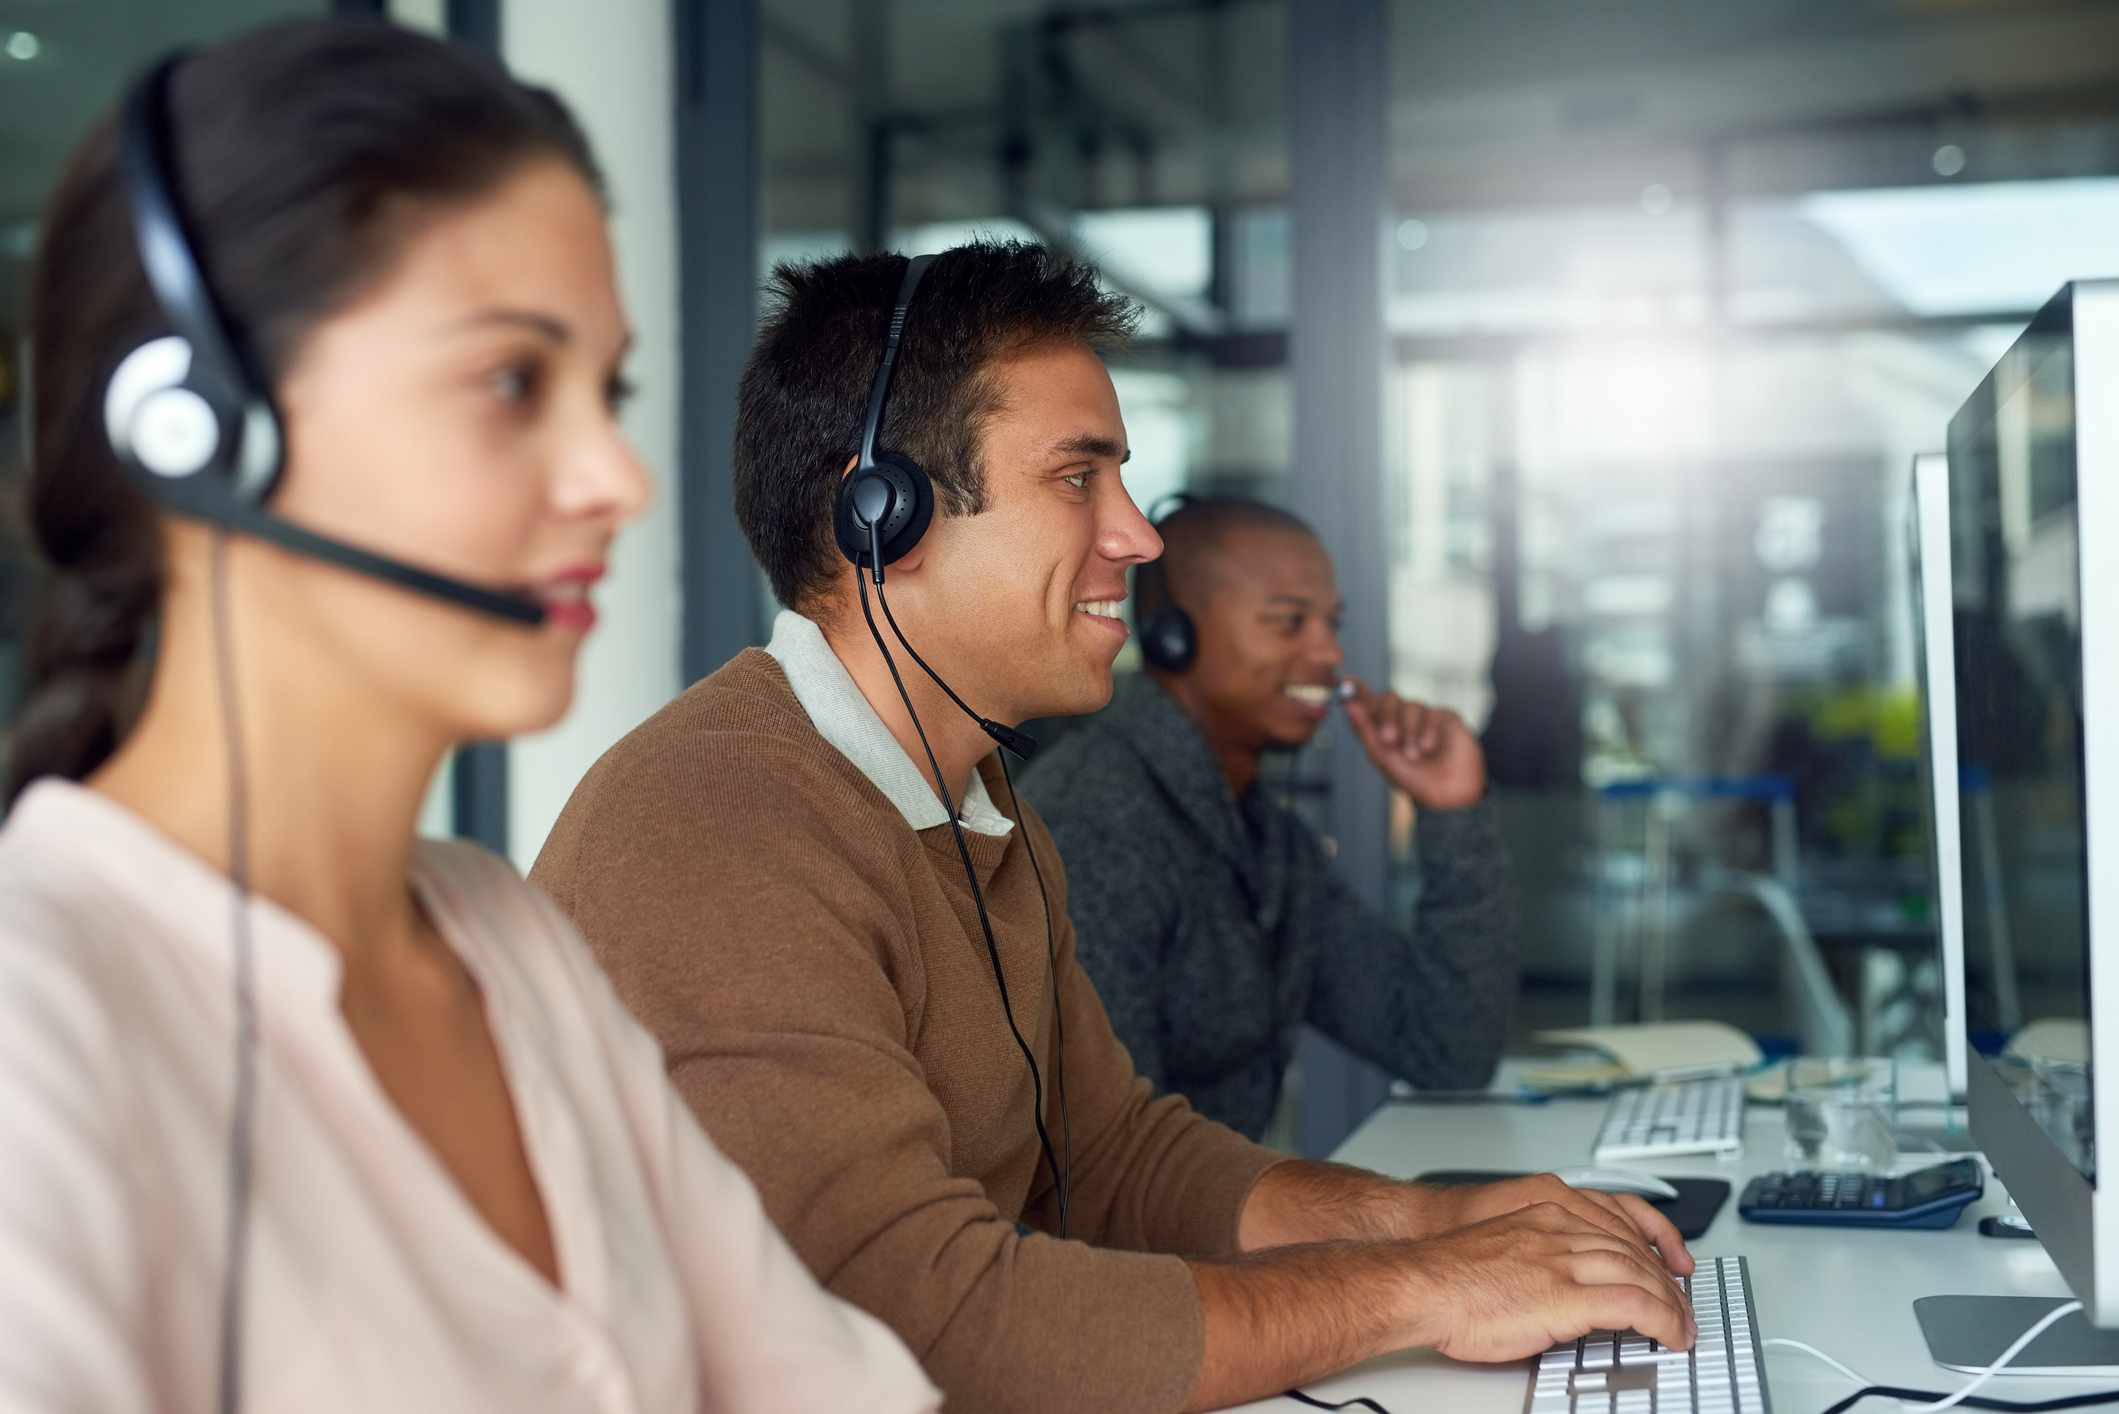 Professional business answering service